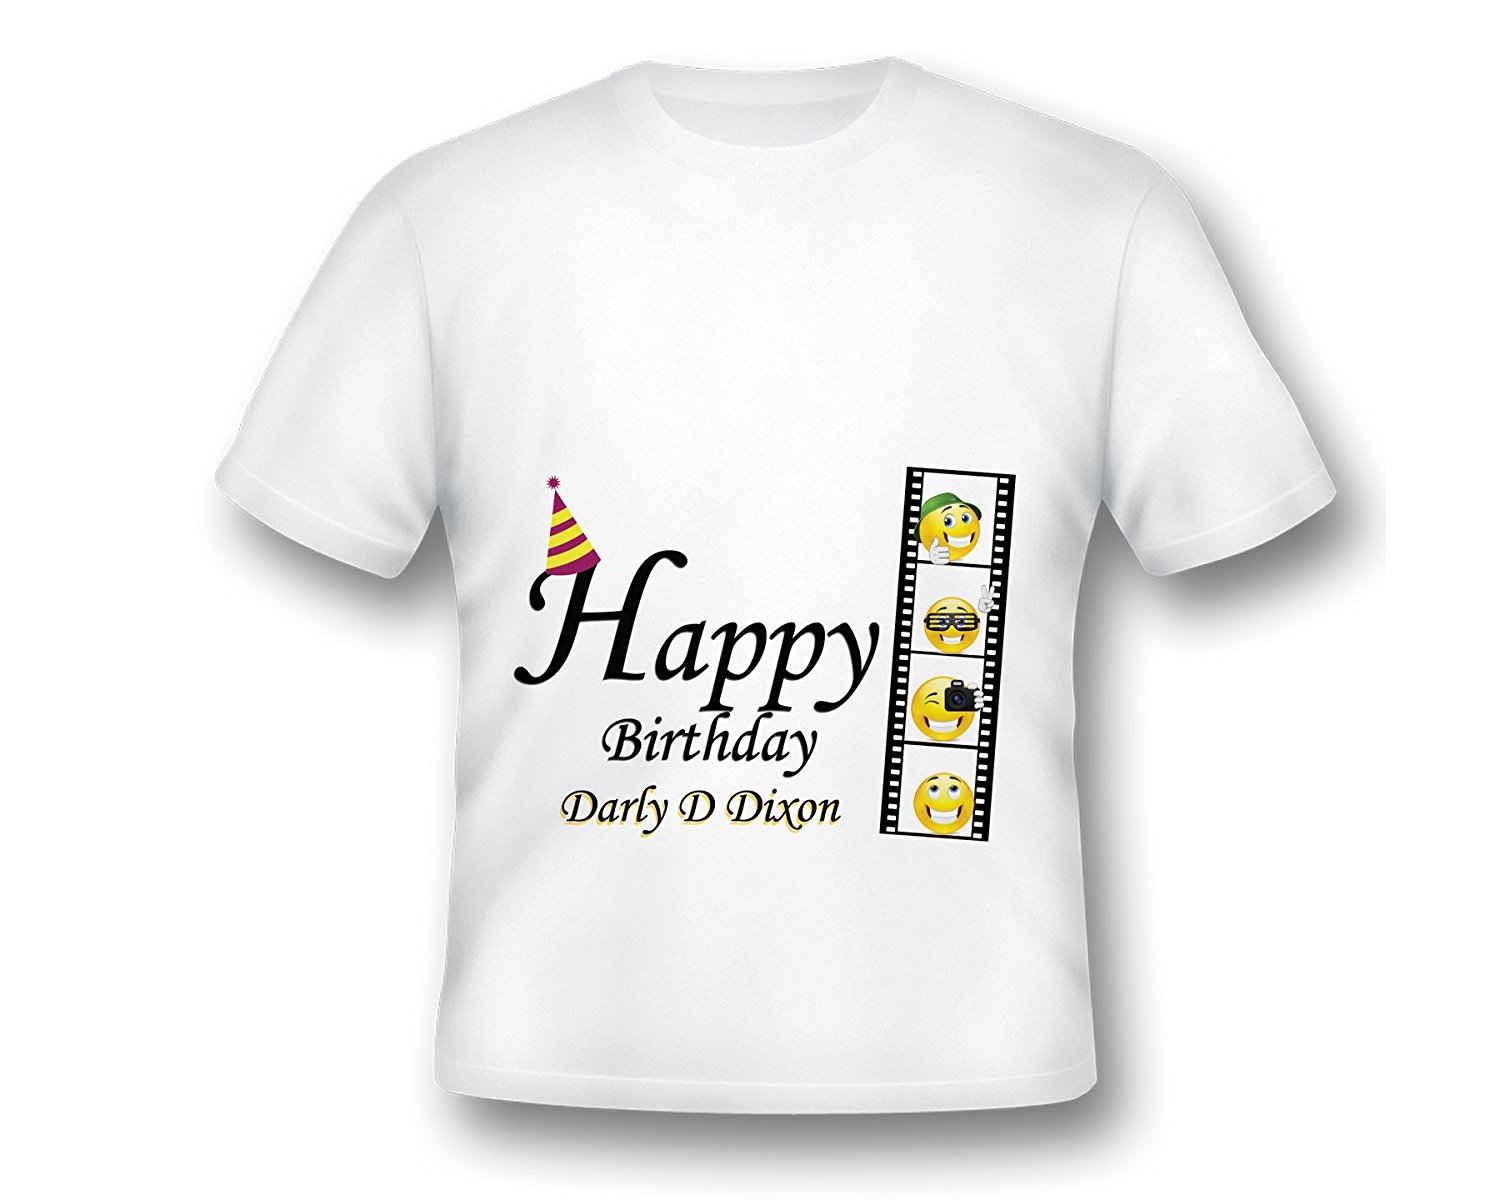 2018 New Summer Men Hot Sale Fashion Custom Movie Emoji Birthday T Shirt Film Printed Customized In Shirts From Mens Clothing Accessories On